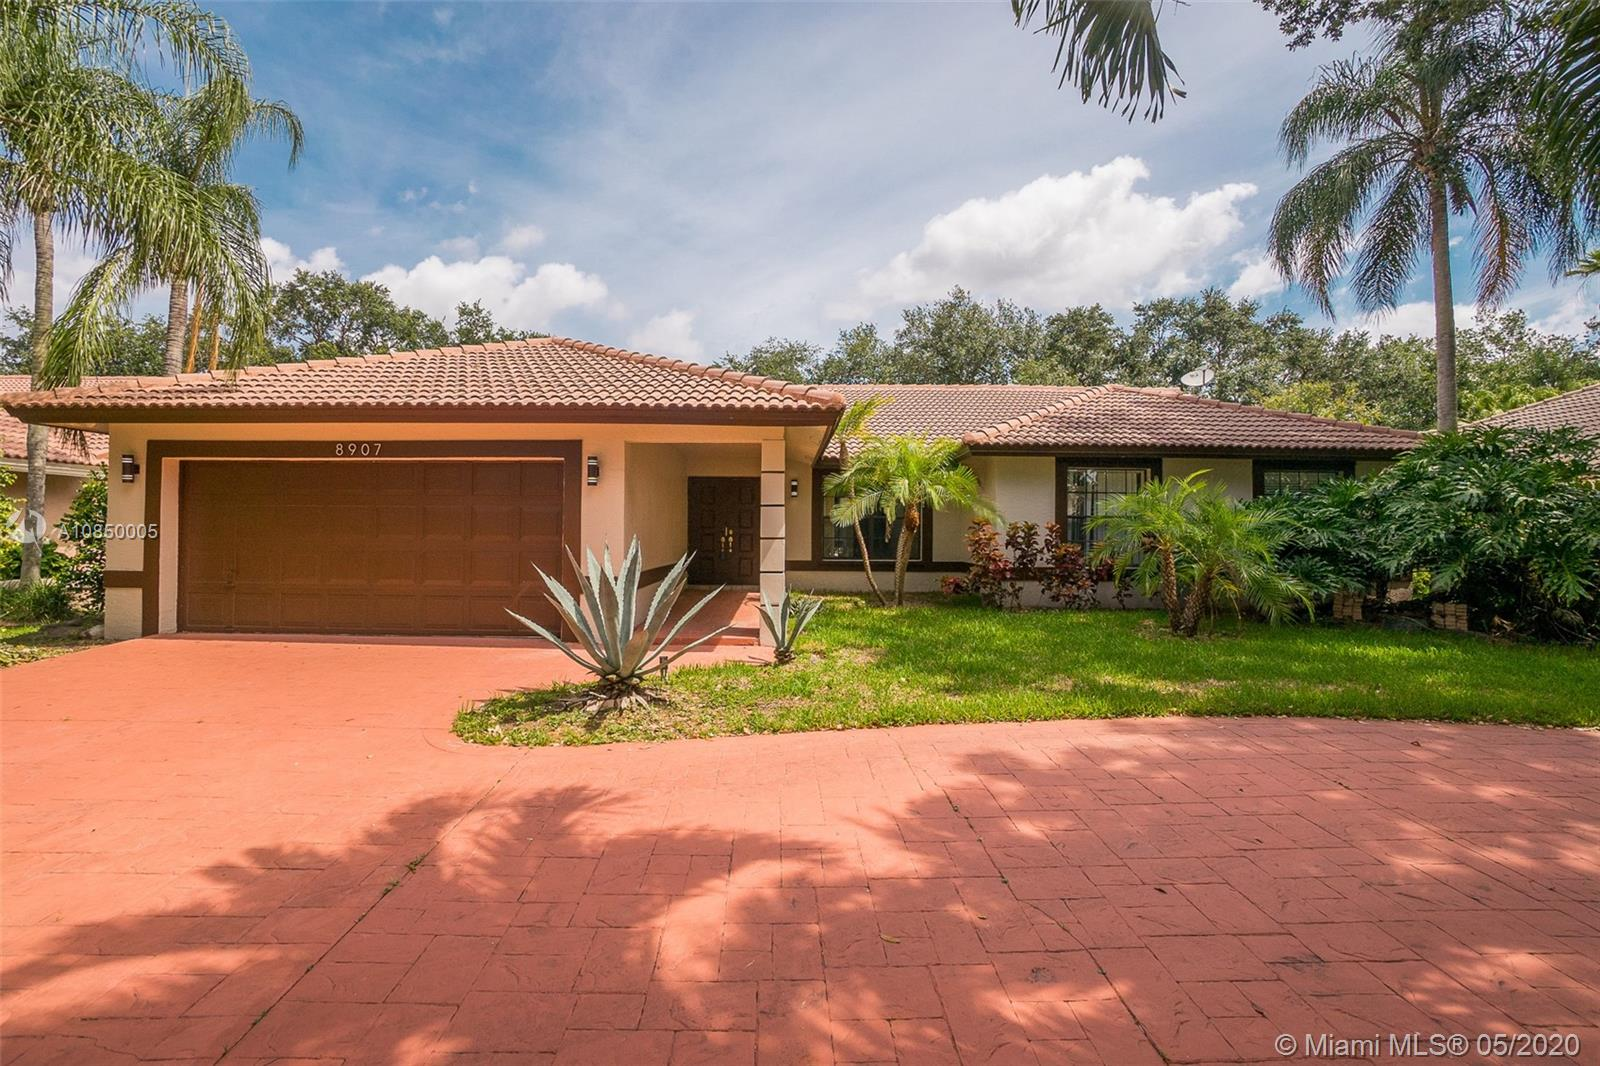 8907 NW 55th Pl, Coral Springs, FL 33067